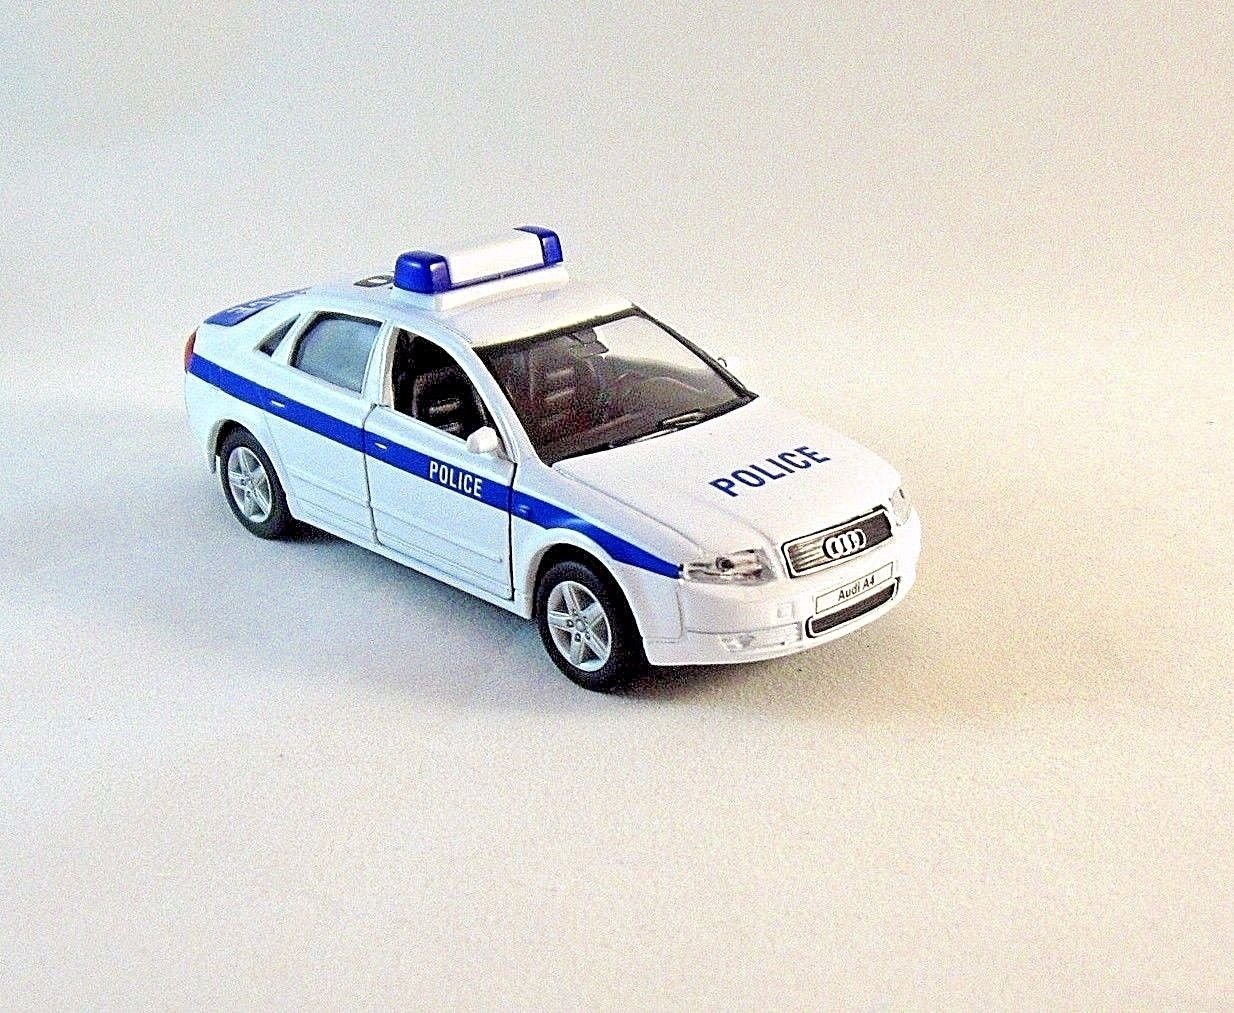 AUDI A4 POLICE CAR , WELLY 1/38 DIECAST CAR COLLECTOR'S MODEL, AUDI COLLECTION